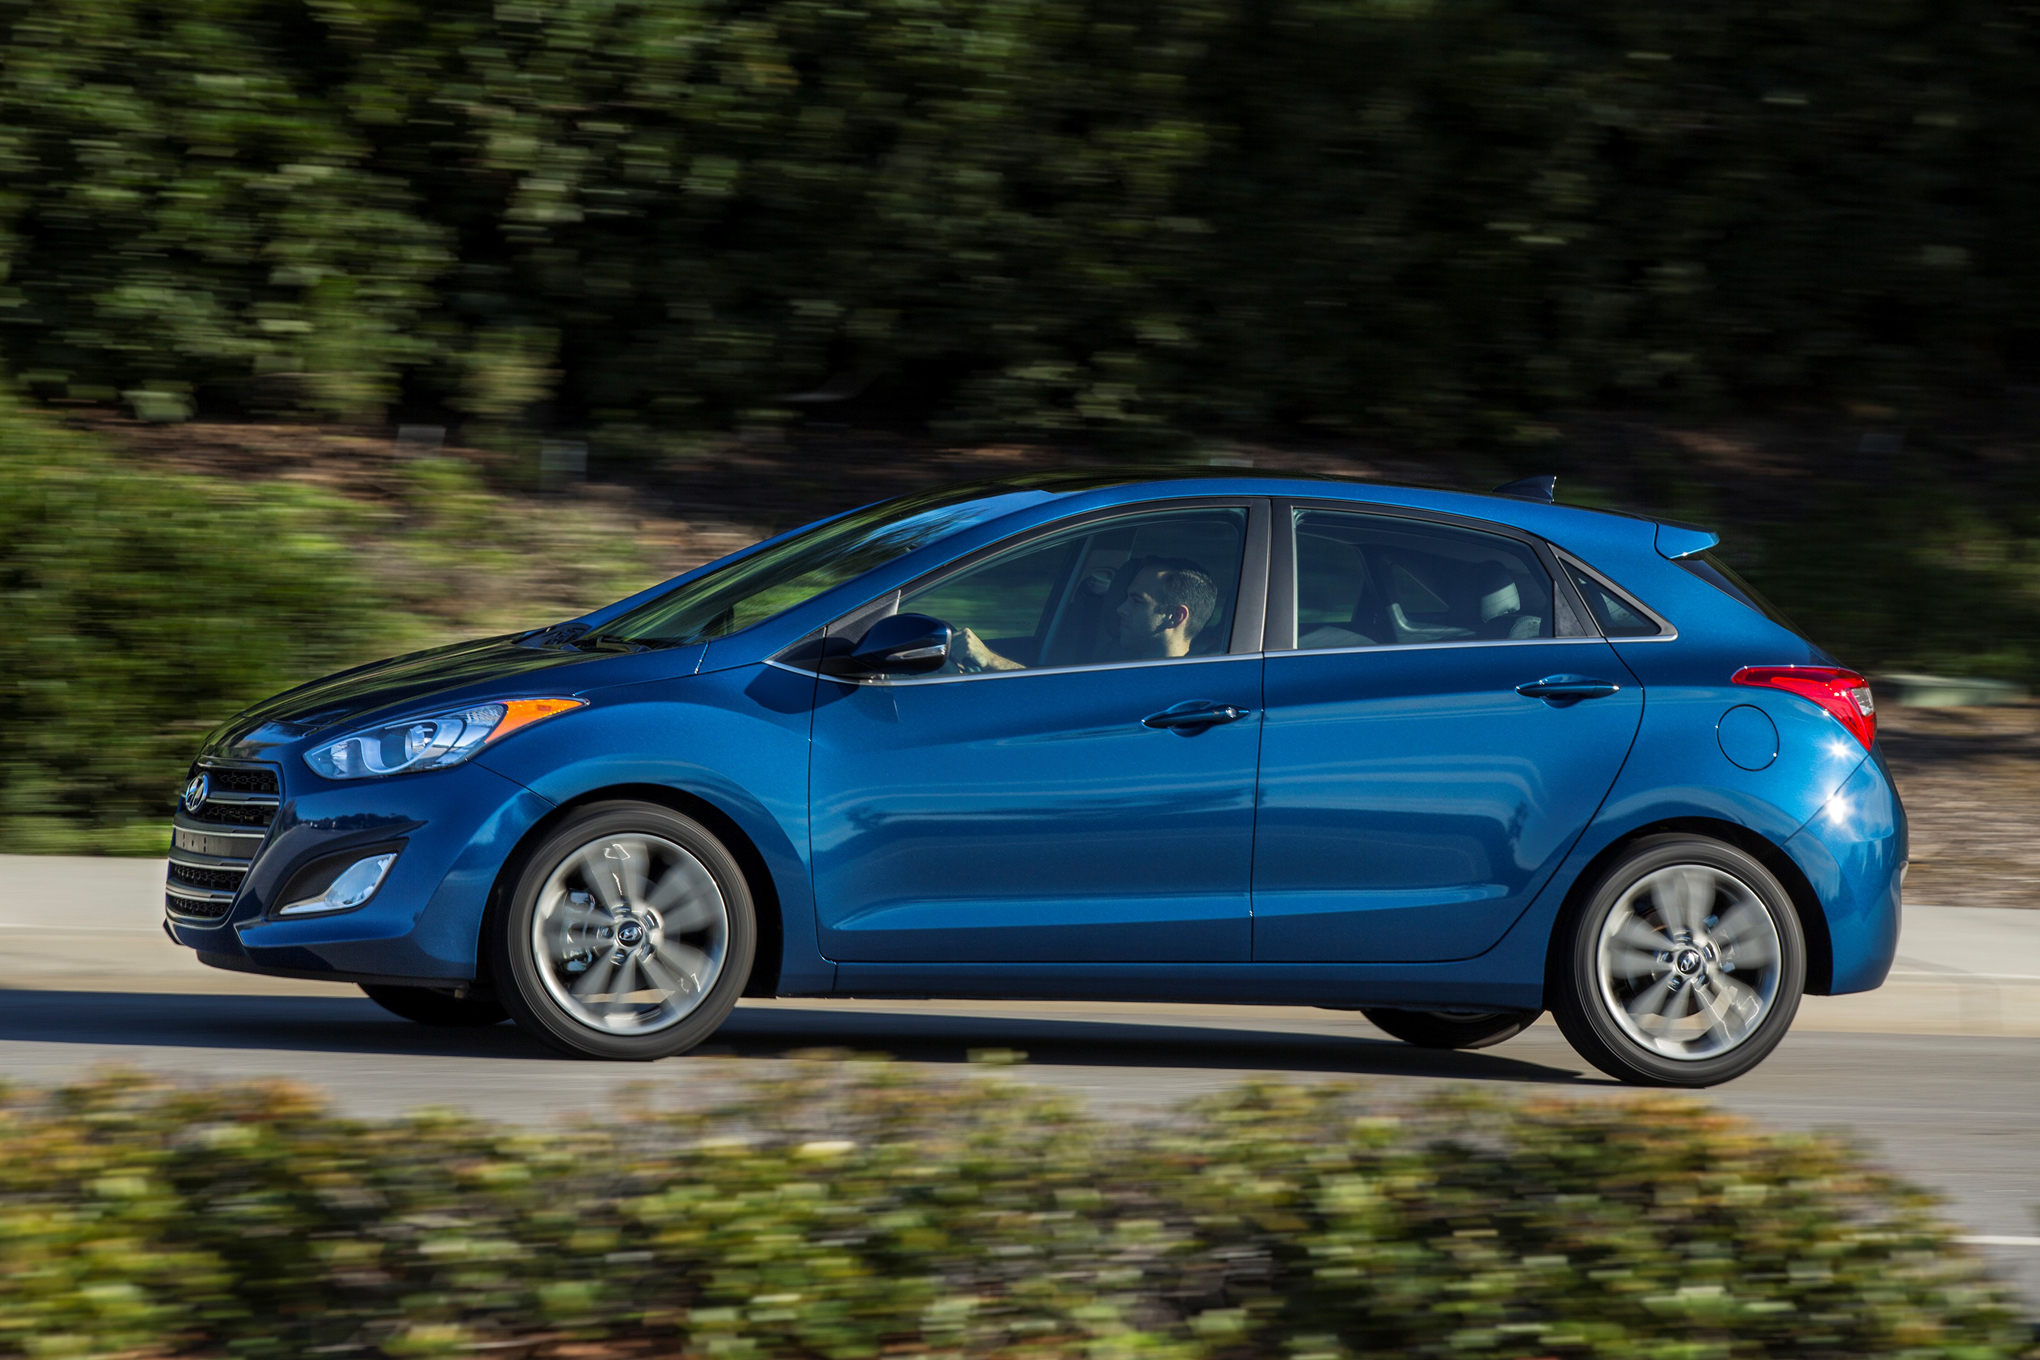 elantra news gt window controls the hyundai wheel overview